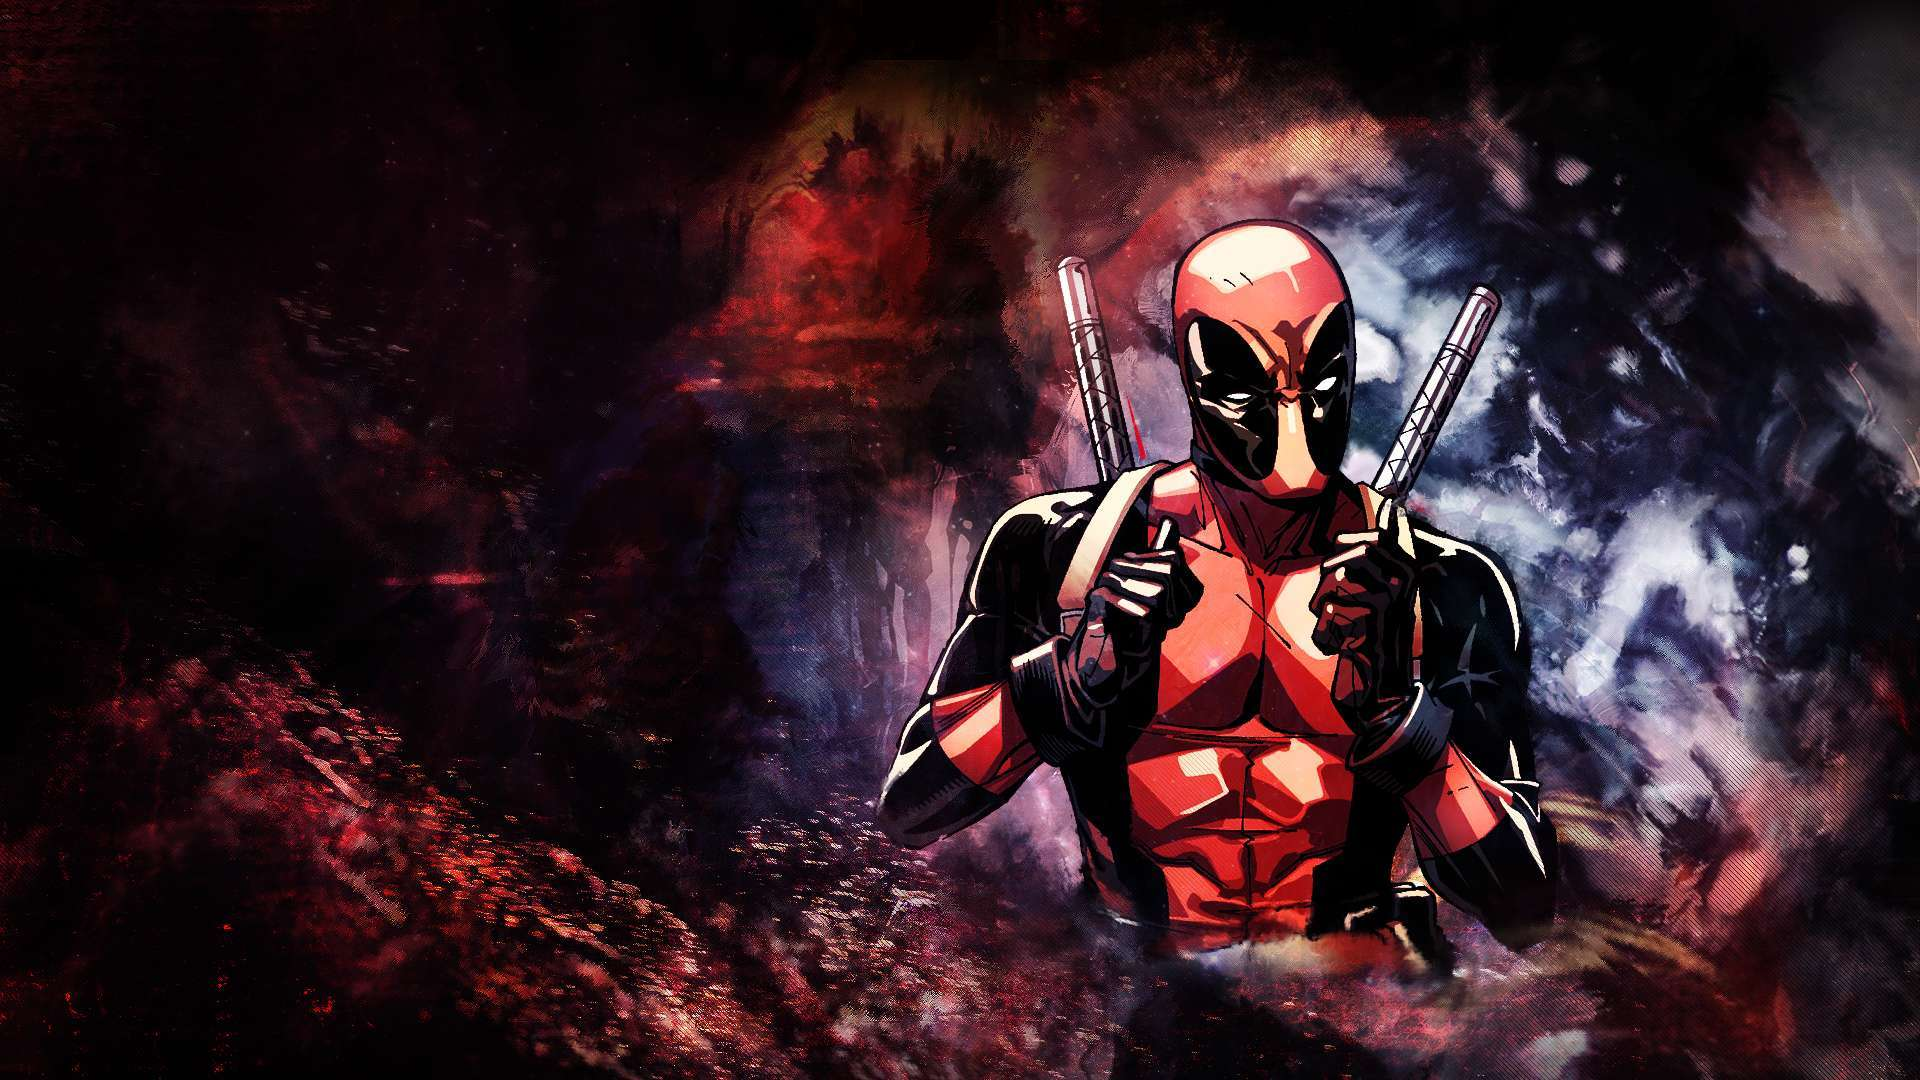 Deadpool-1920x1080-Walla-akeh-wallpaper-wp3404510